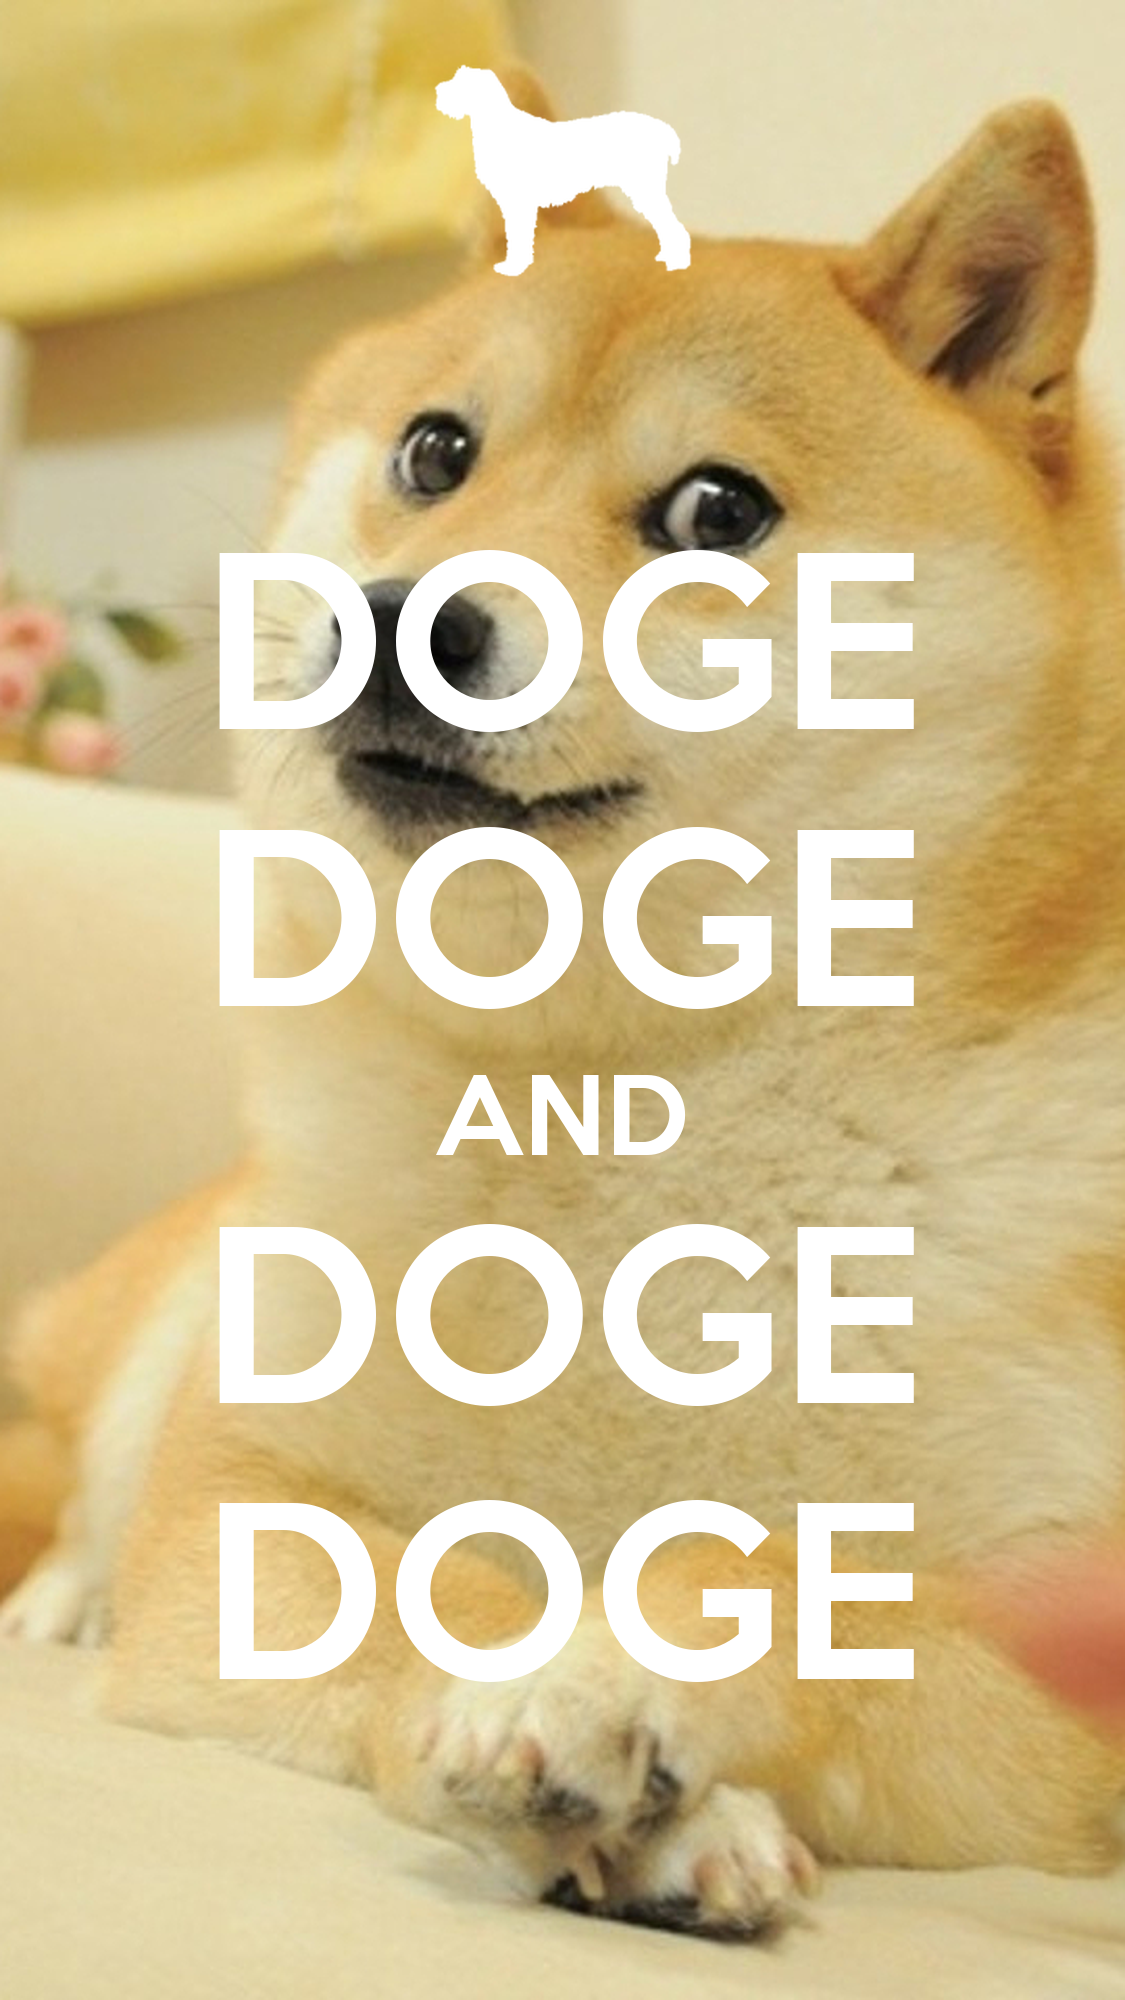 Doge, Wallpapers and iPhone on Pinterest